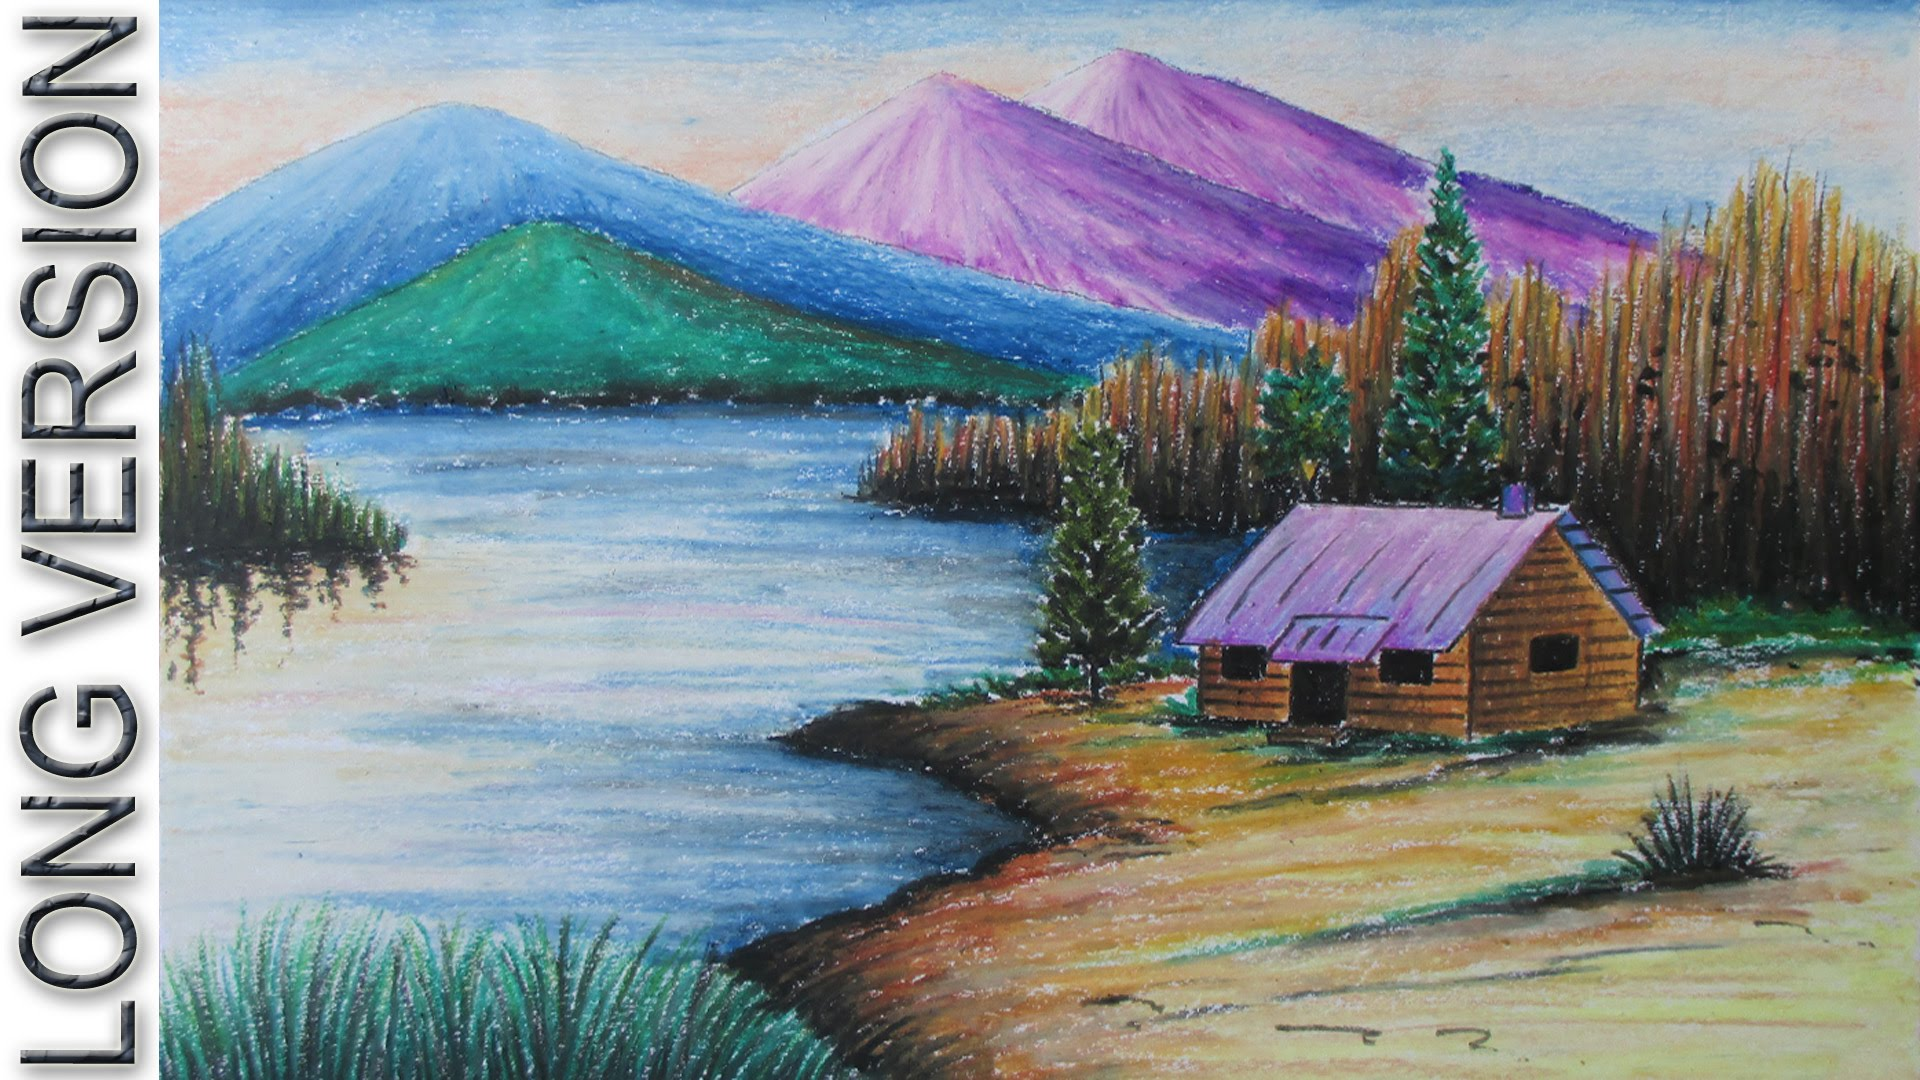 Drawn scenic pastel Landscape Mountain with Landscape Draw